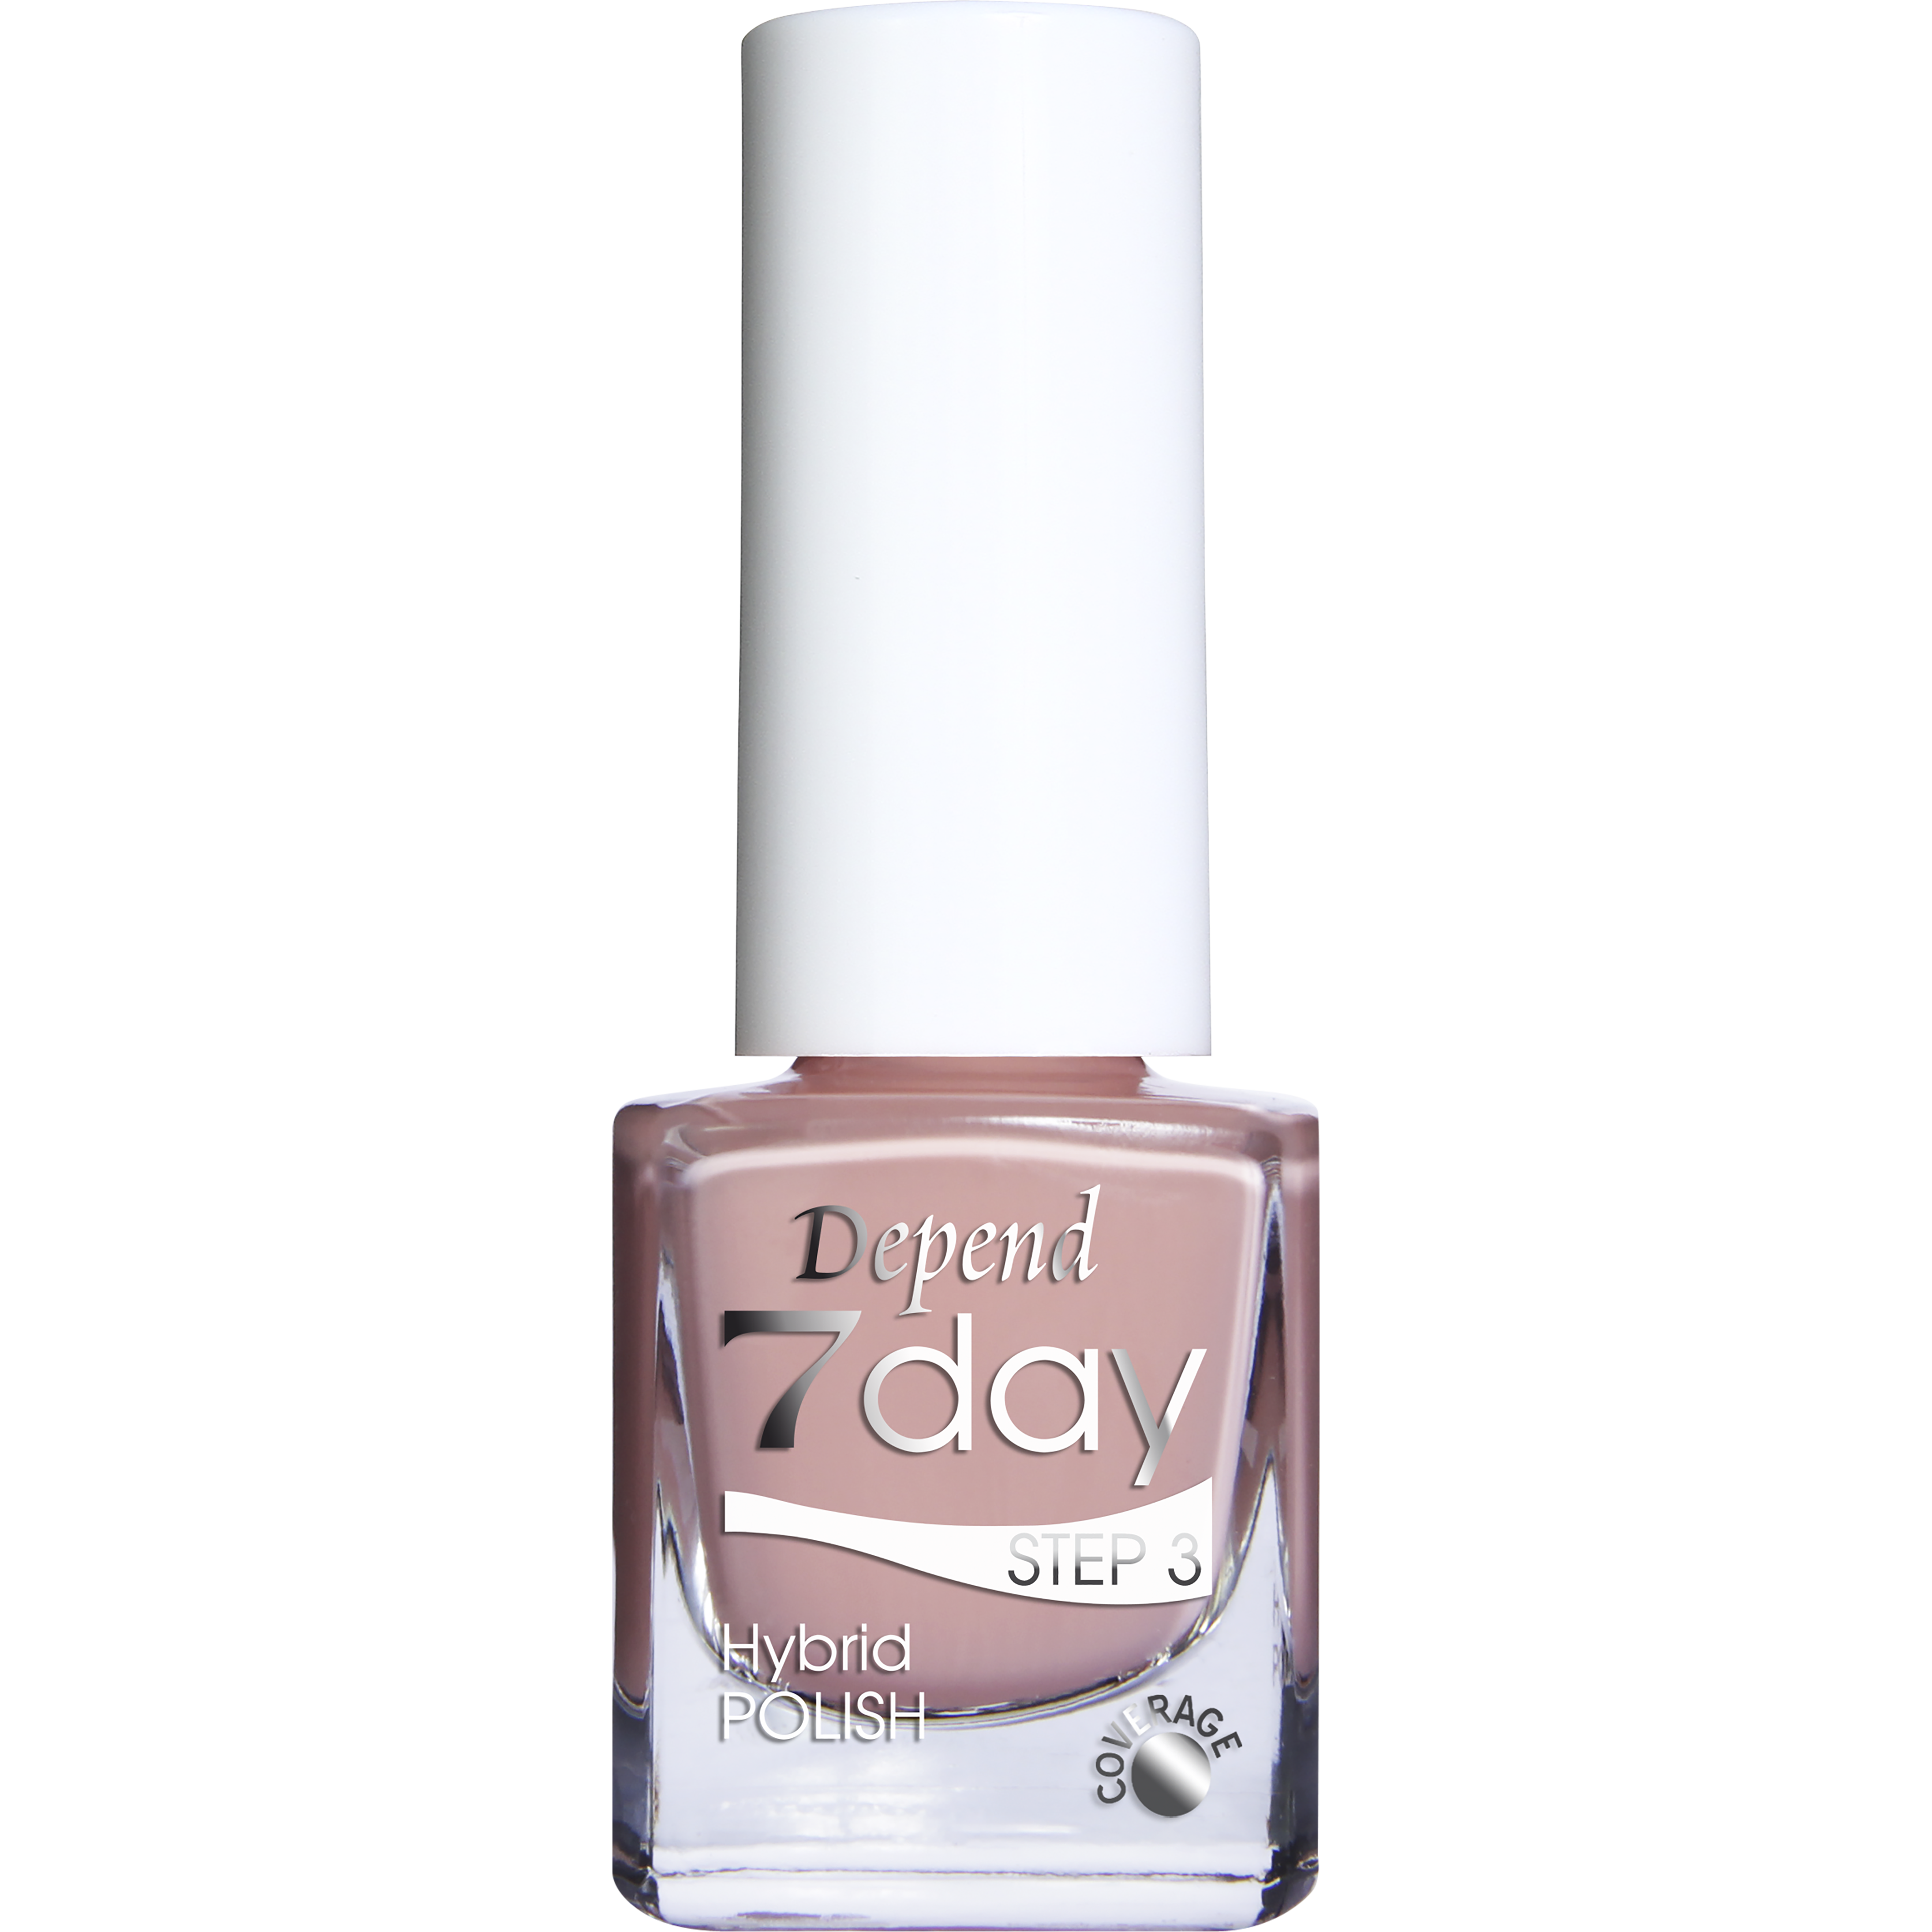 7 Day Nailpolish 7136 Hello Beautiful